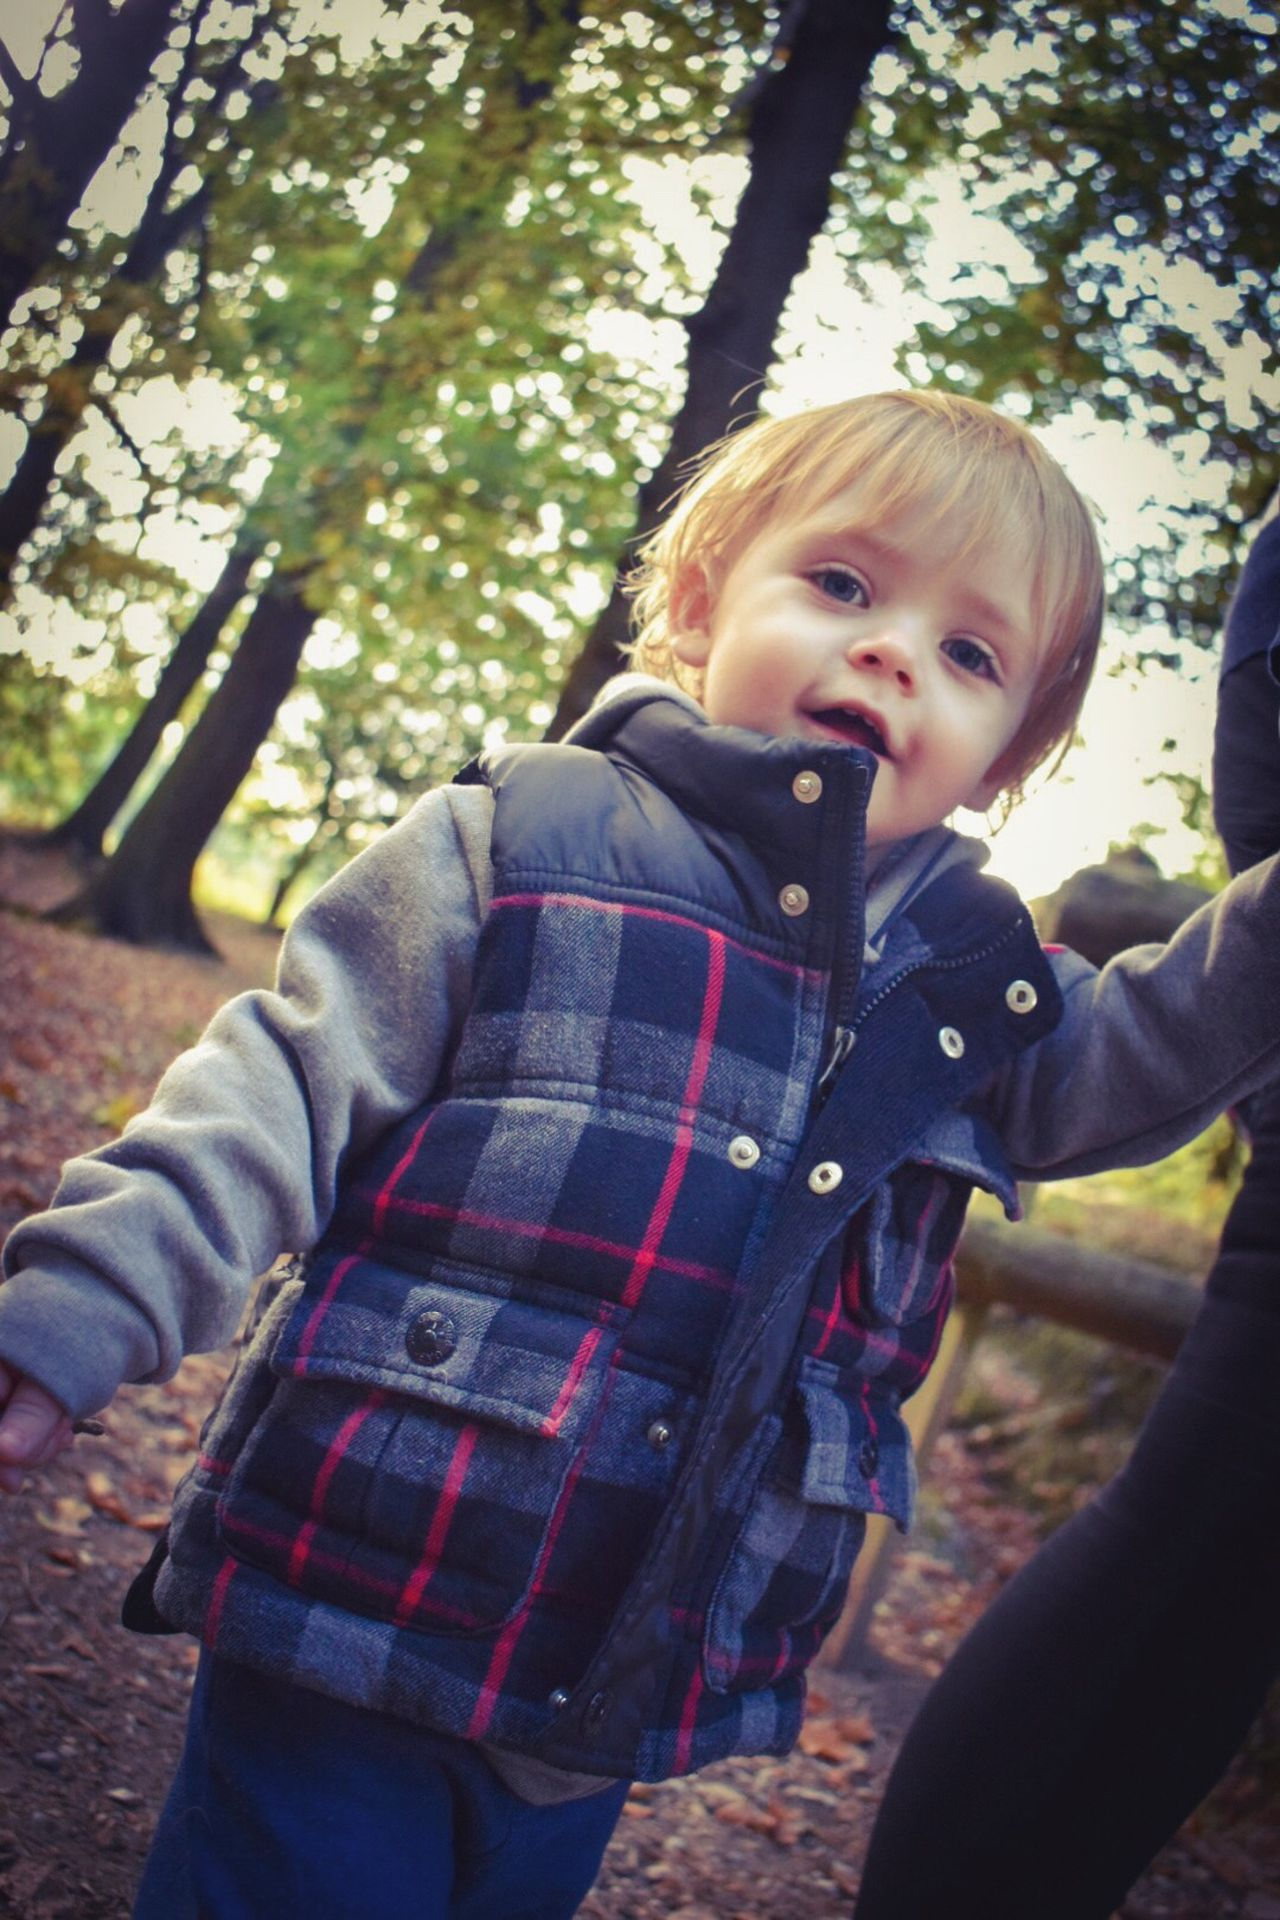 Childhood One Person Tree Outdoors Child Innocence Day People Enjoyment Smiling Autumn Nikonphotography Outdoor Photography Eeyem Eeyemgallery EeyemBestPhotography Nikonphotographer Sibling Family Bonding Love Happiness Mylife Nikon Togetherness